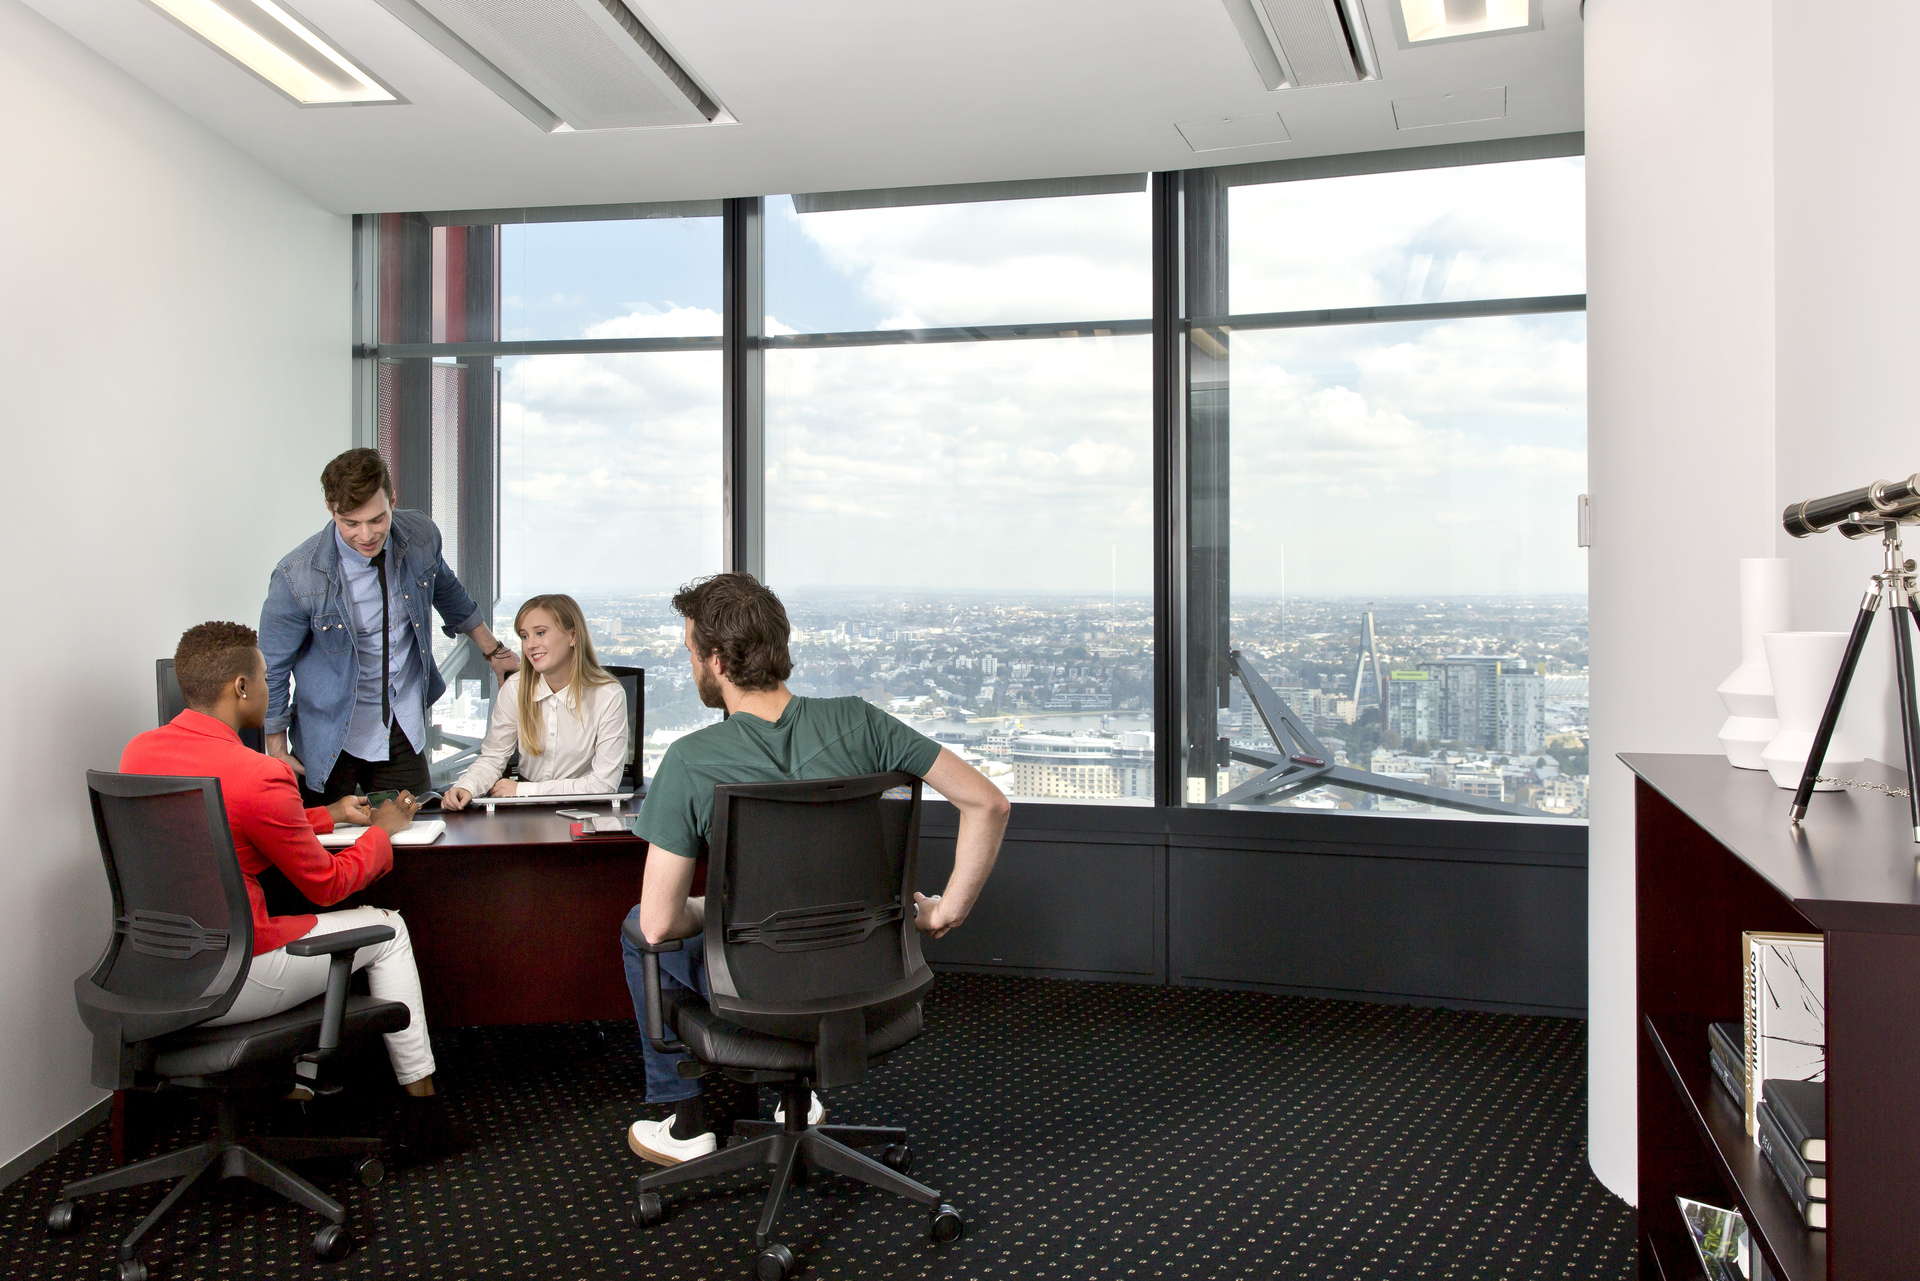 EXPOSE YOUR BUSINESS POTENTIAL AT BARANGAROO TOWER LOCATED IN SYDNEY